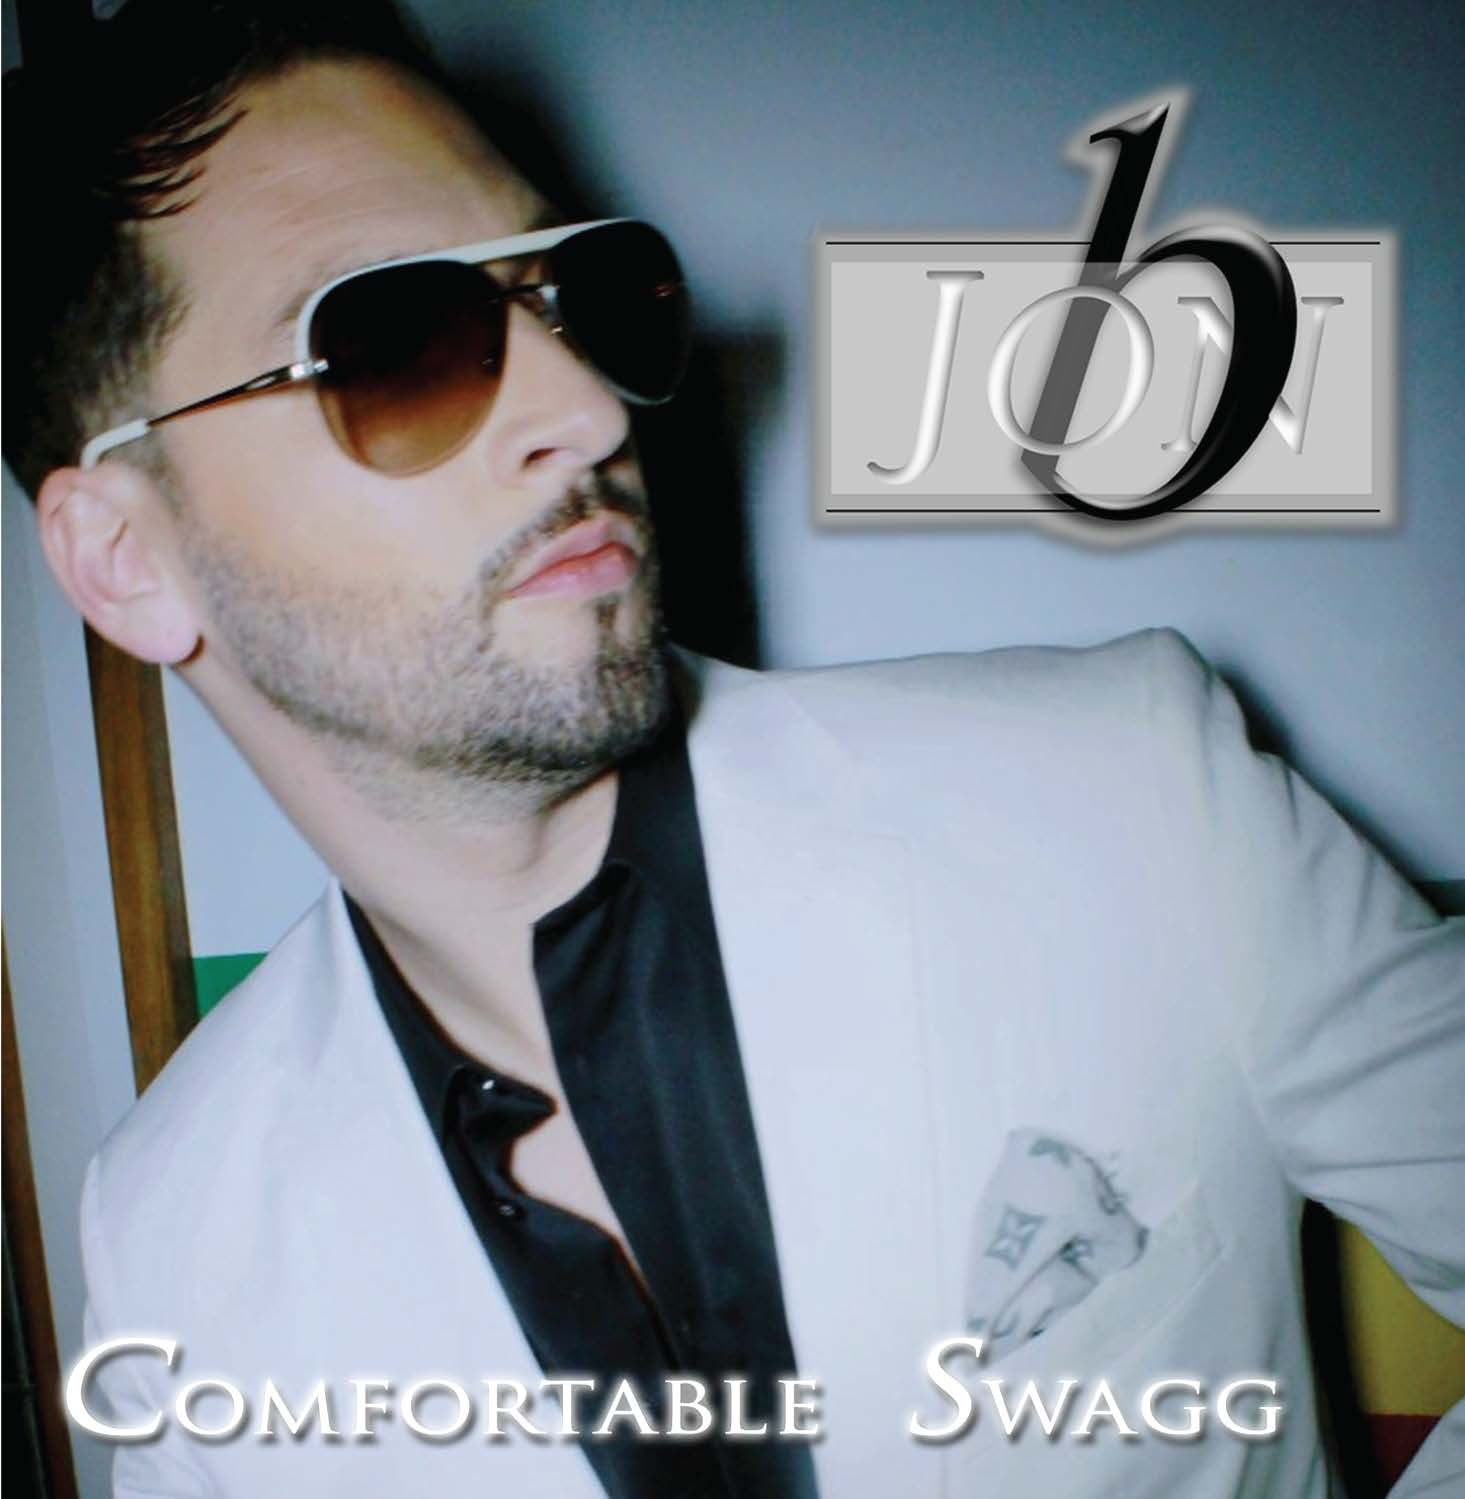 Jon b fortable swagg song leaks